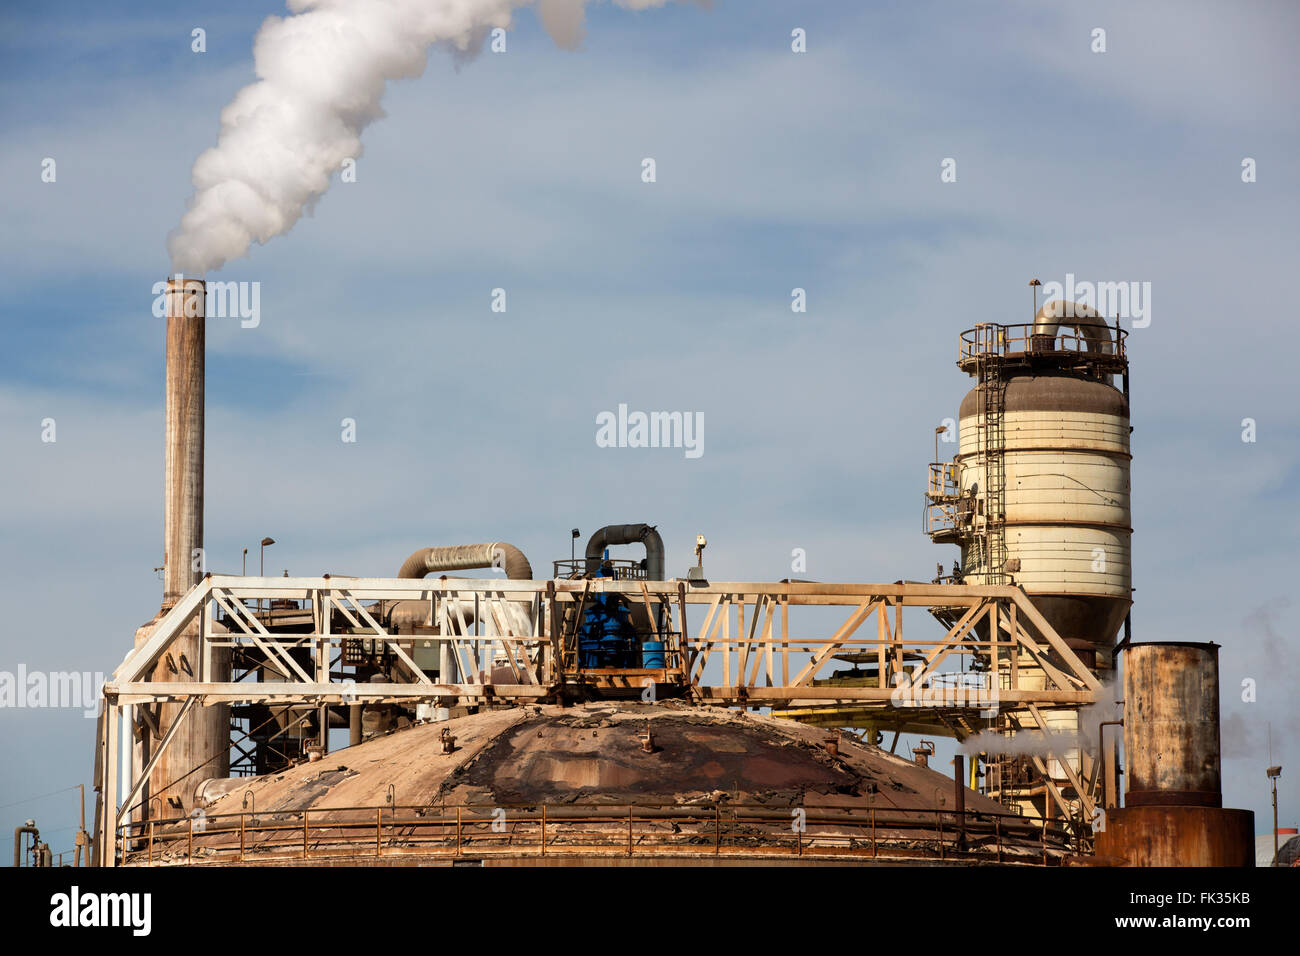 geothermal energy plant, Imperial Valley, California, - Stock Image